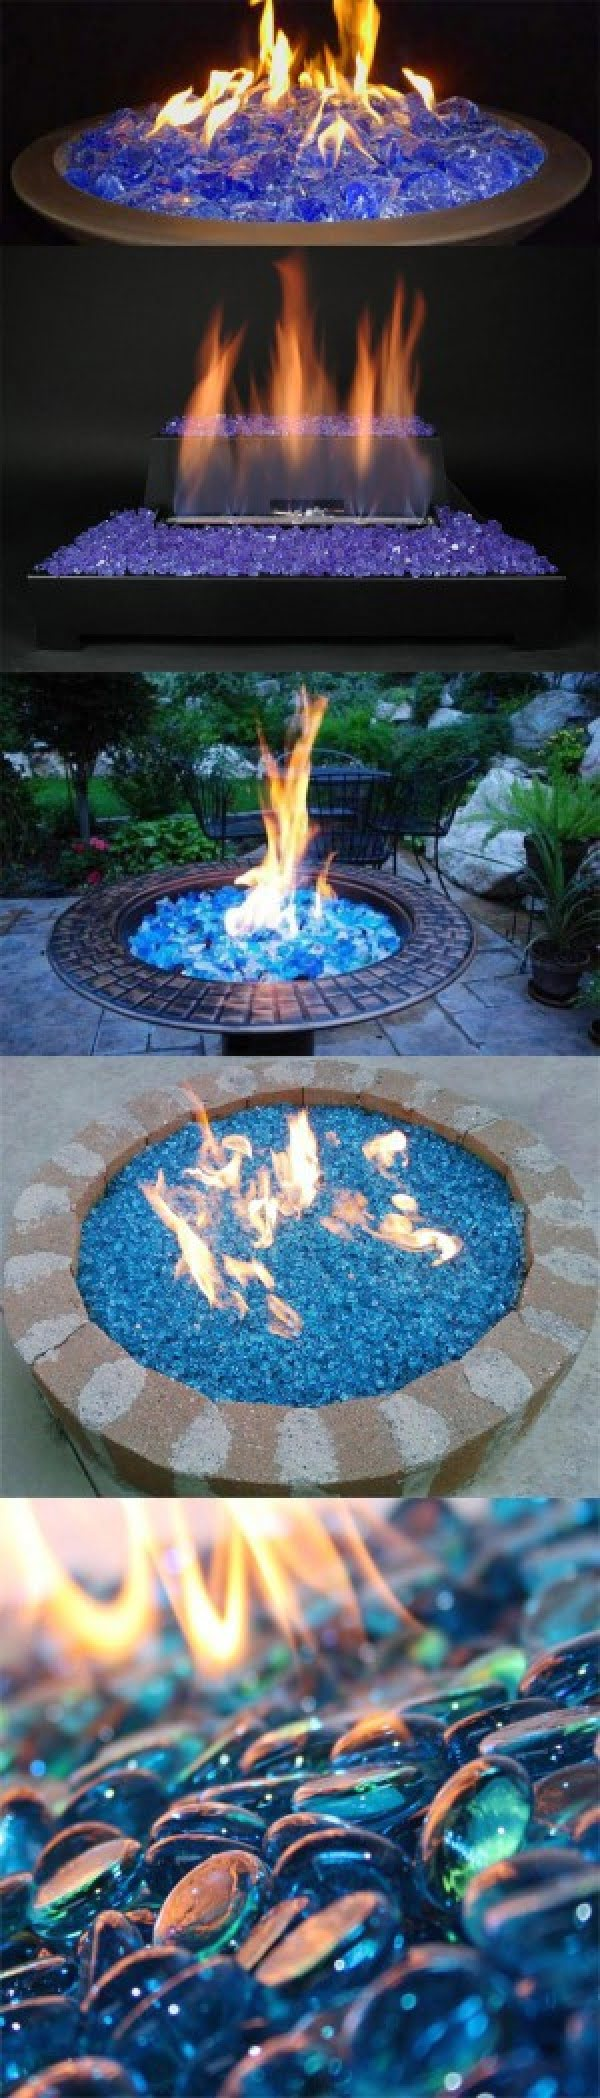 Check out the tutorial on how to make a DIY fireglass fire pit